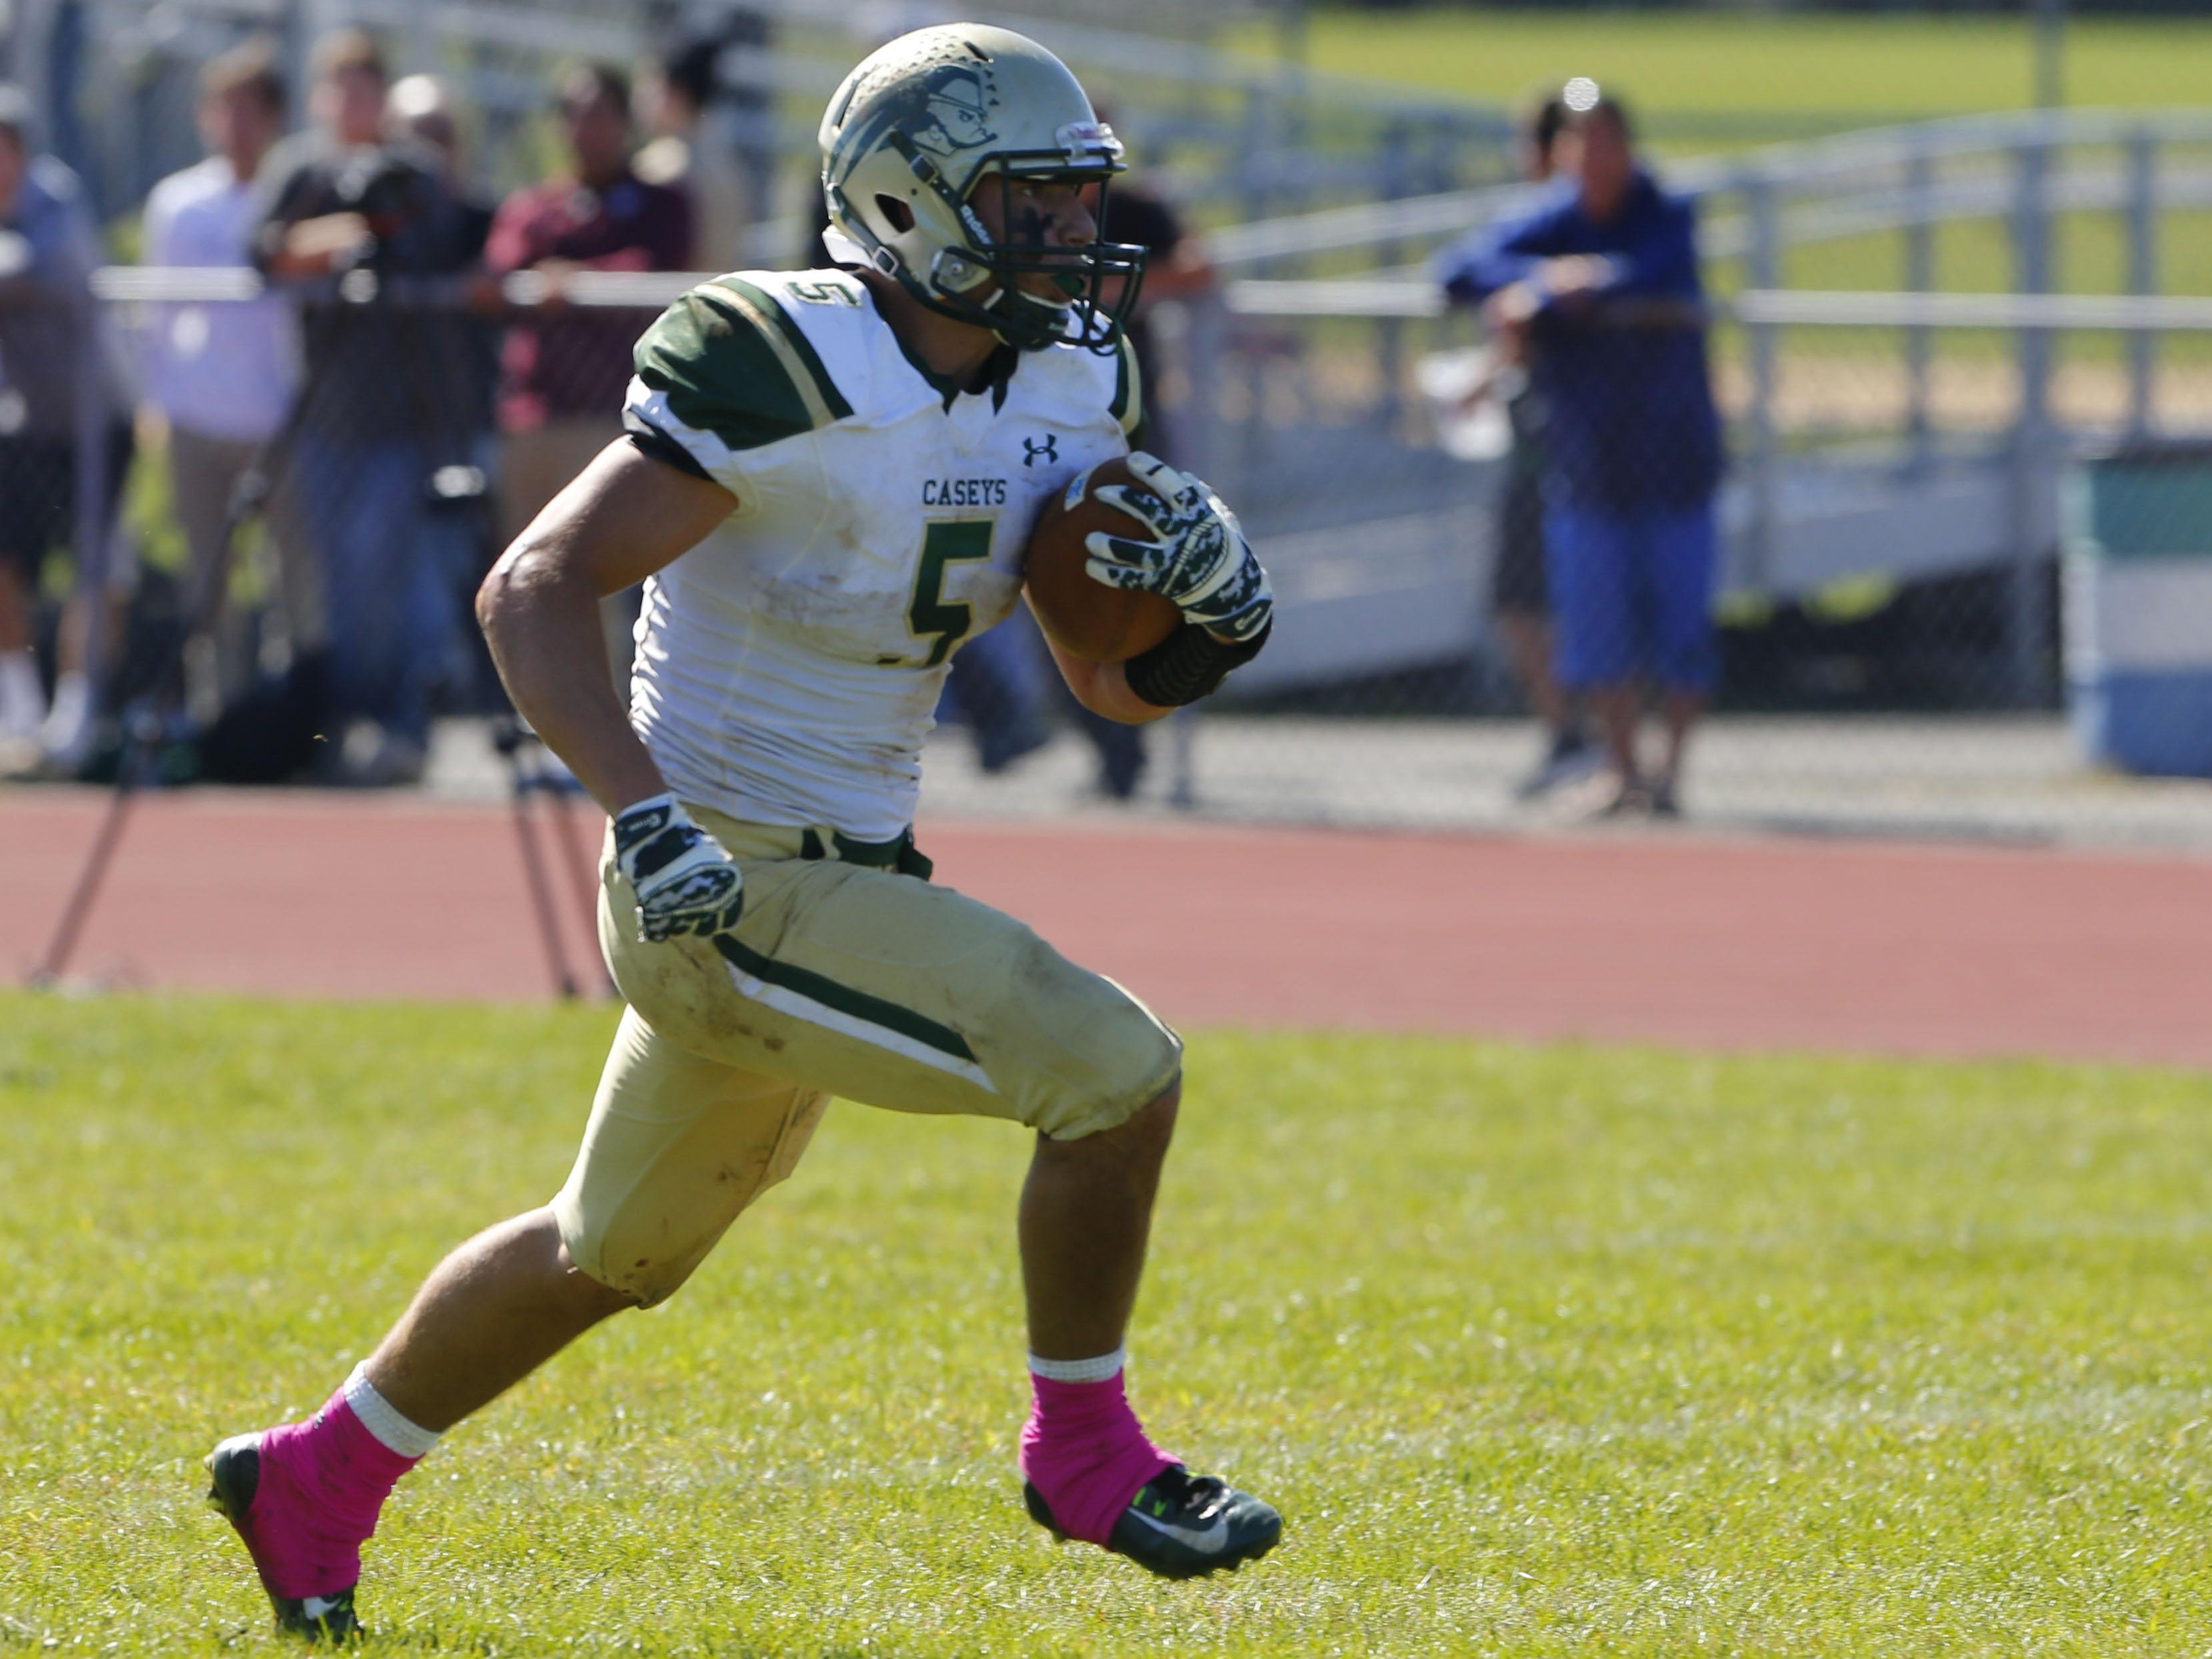 Michael Wilen (5) of Red Bank Catholic runs for a touchdown against Red Bank Catholic at Colts Neck High School, Colts Neck,NJ. Saturday, October 10, 2015.